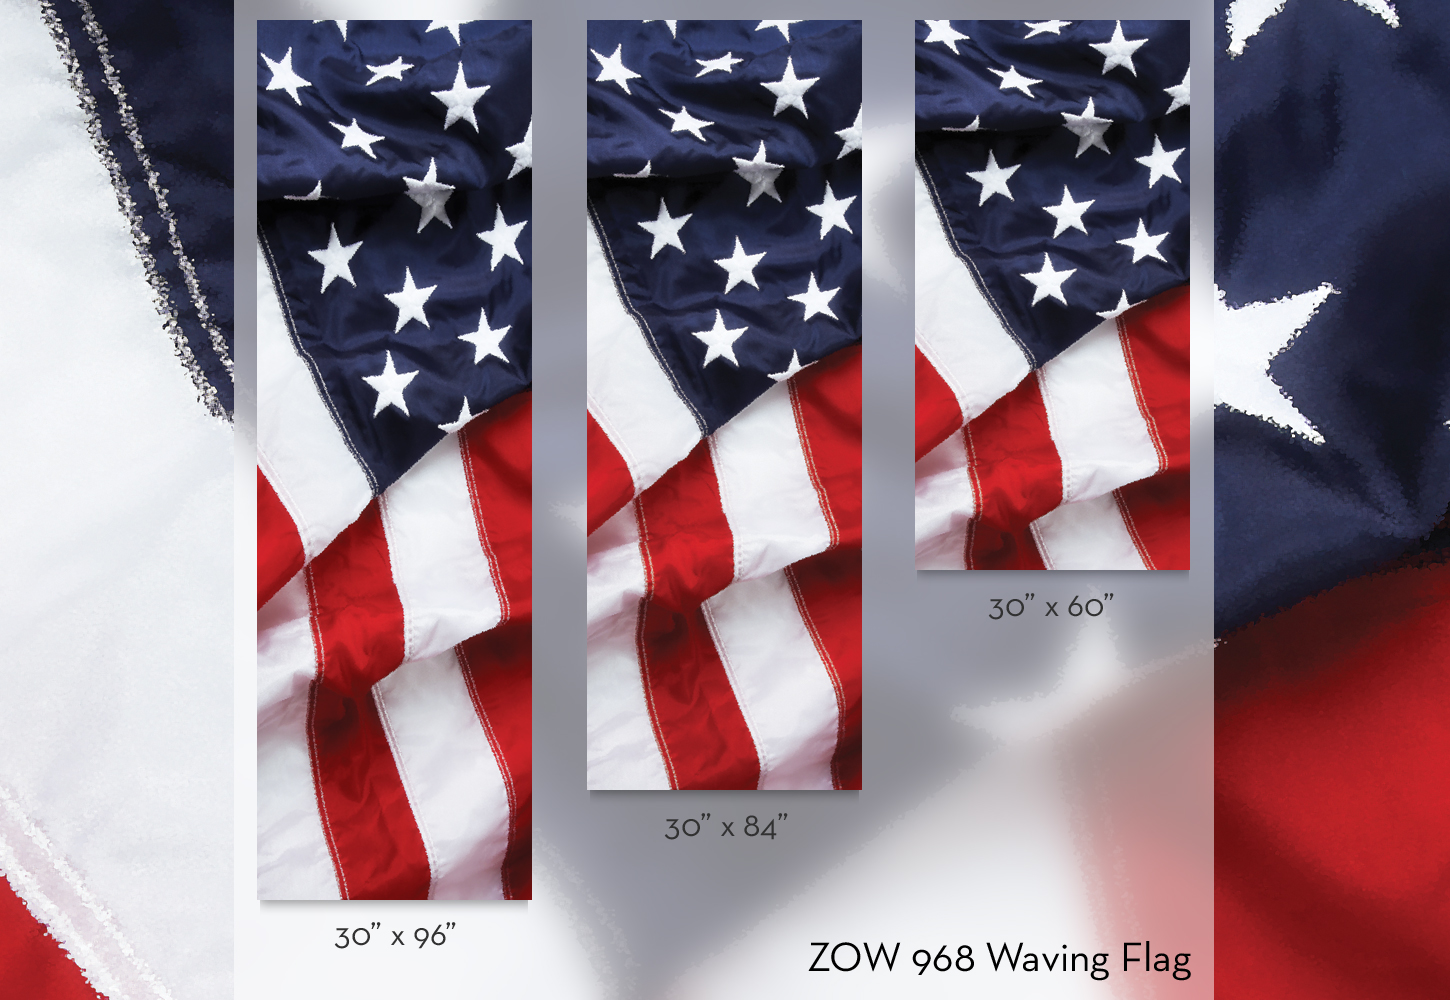 ZOW 968 Waving Flag